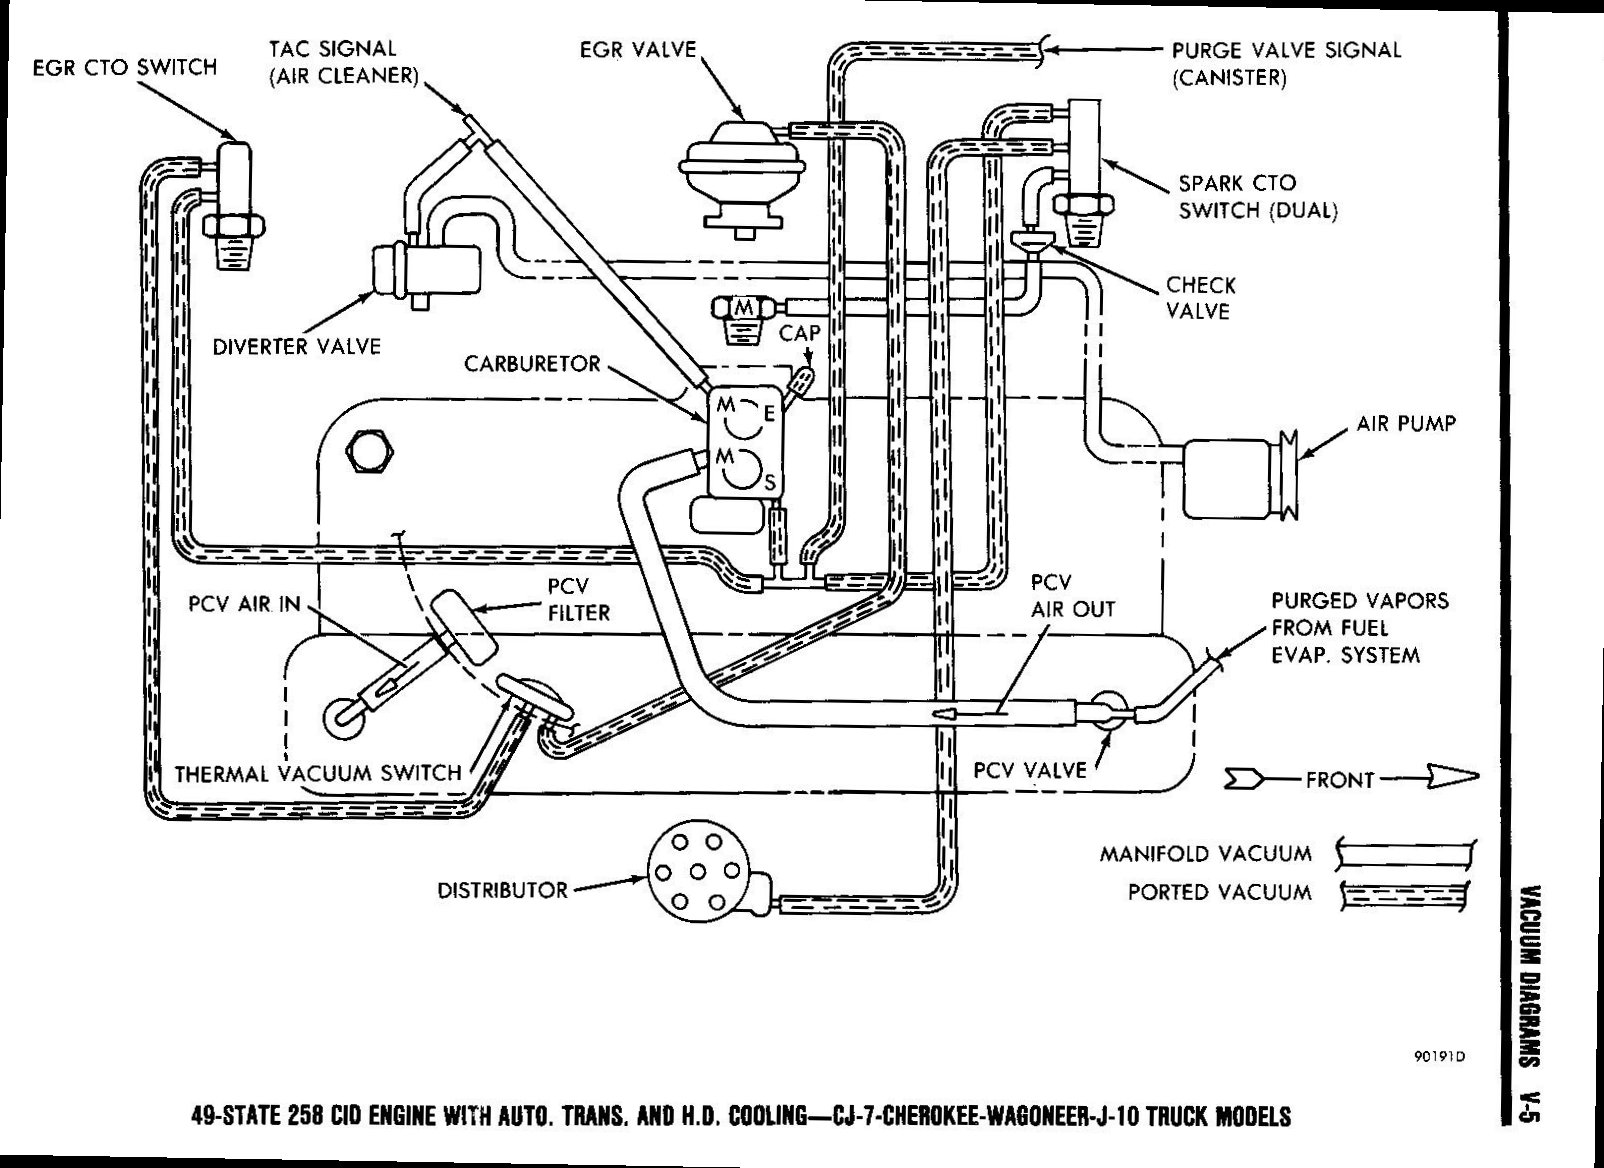 cj5 258 vacuum diagram jeepforum com rh jeepforum com Jeep CJ7 Parts 95 Jeep Wrangler Wiring Diagram